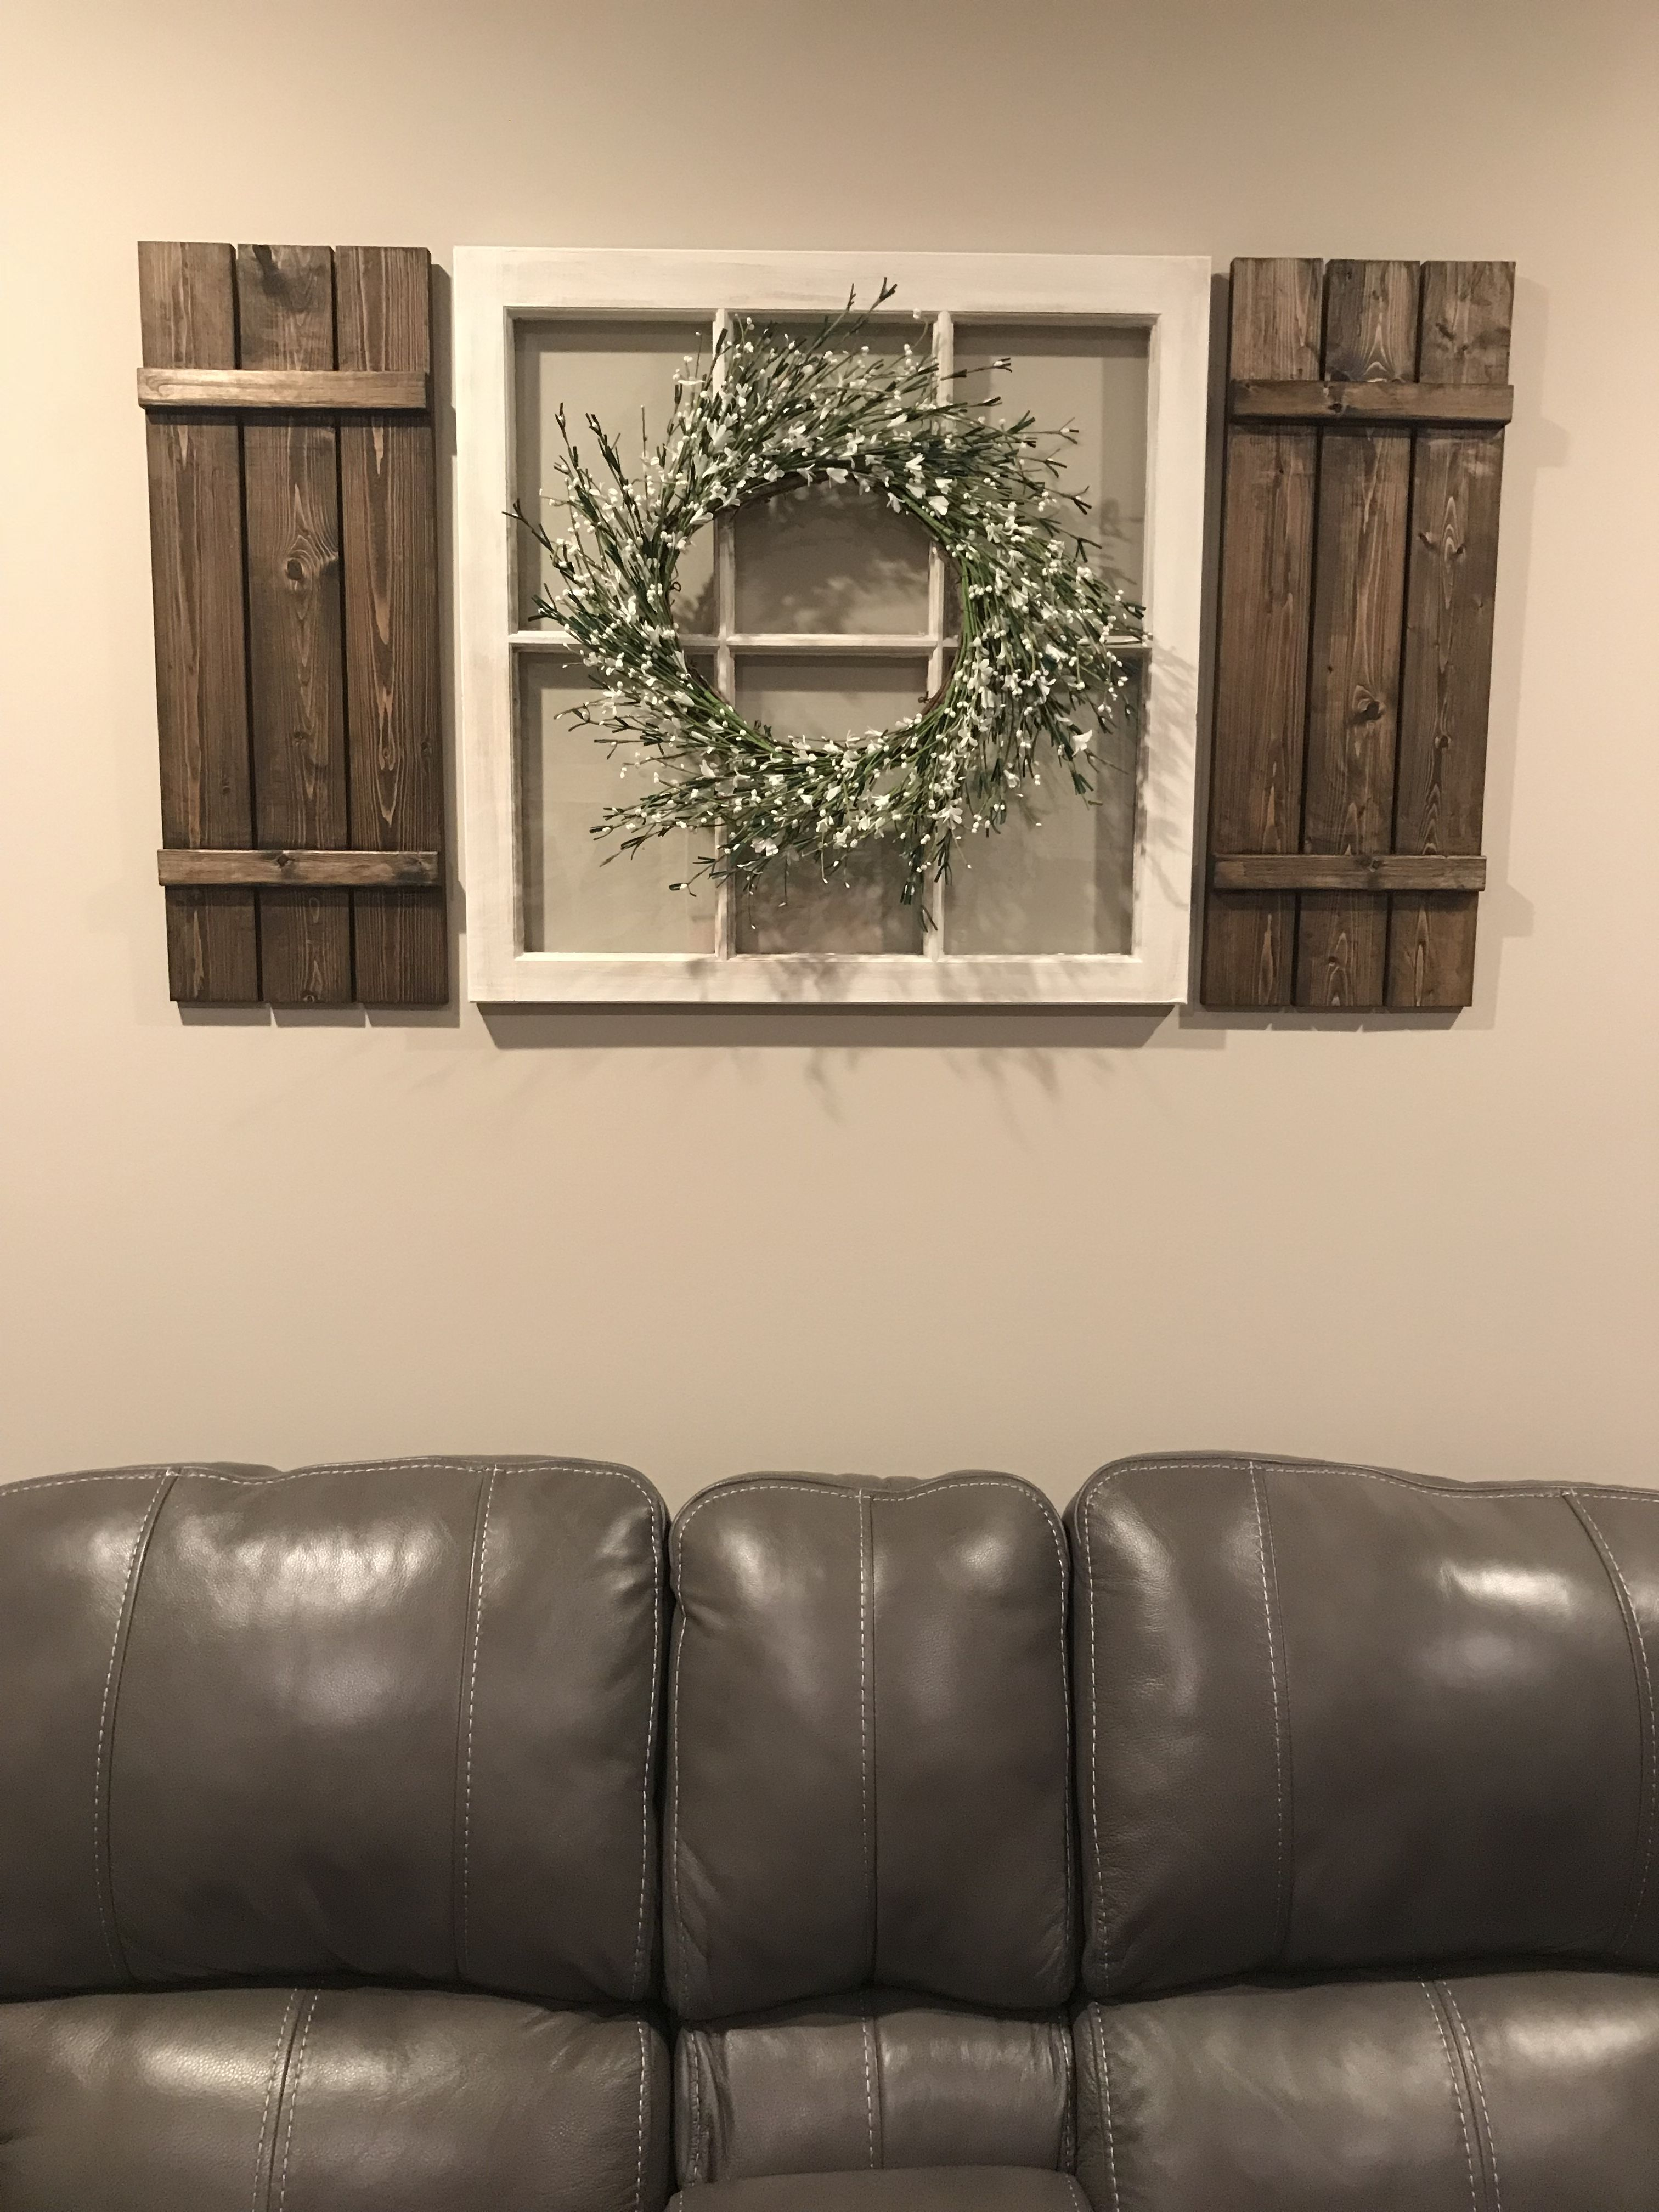 DIY window pane and shutters home farmhouse decor! | Farmhouse ...